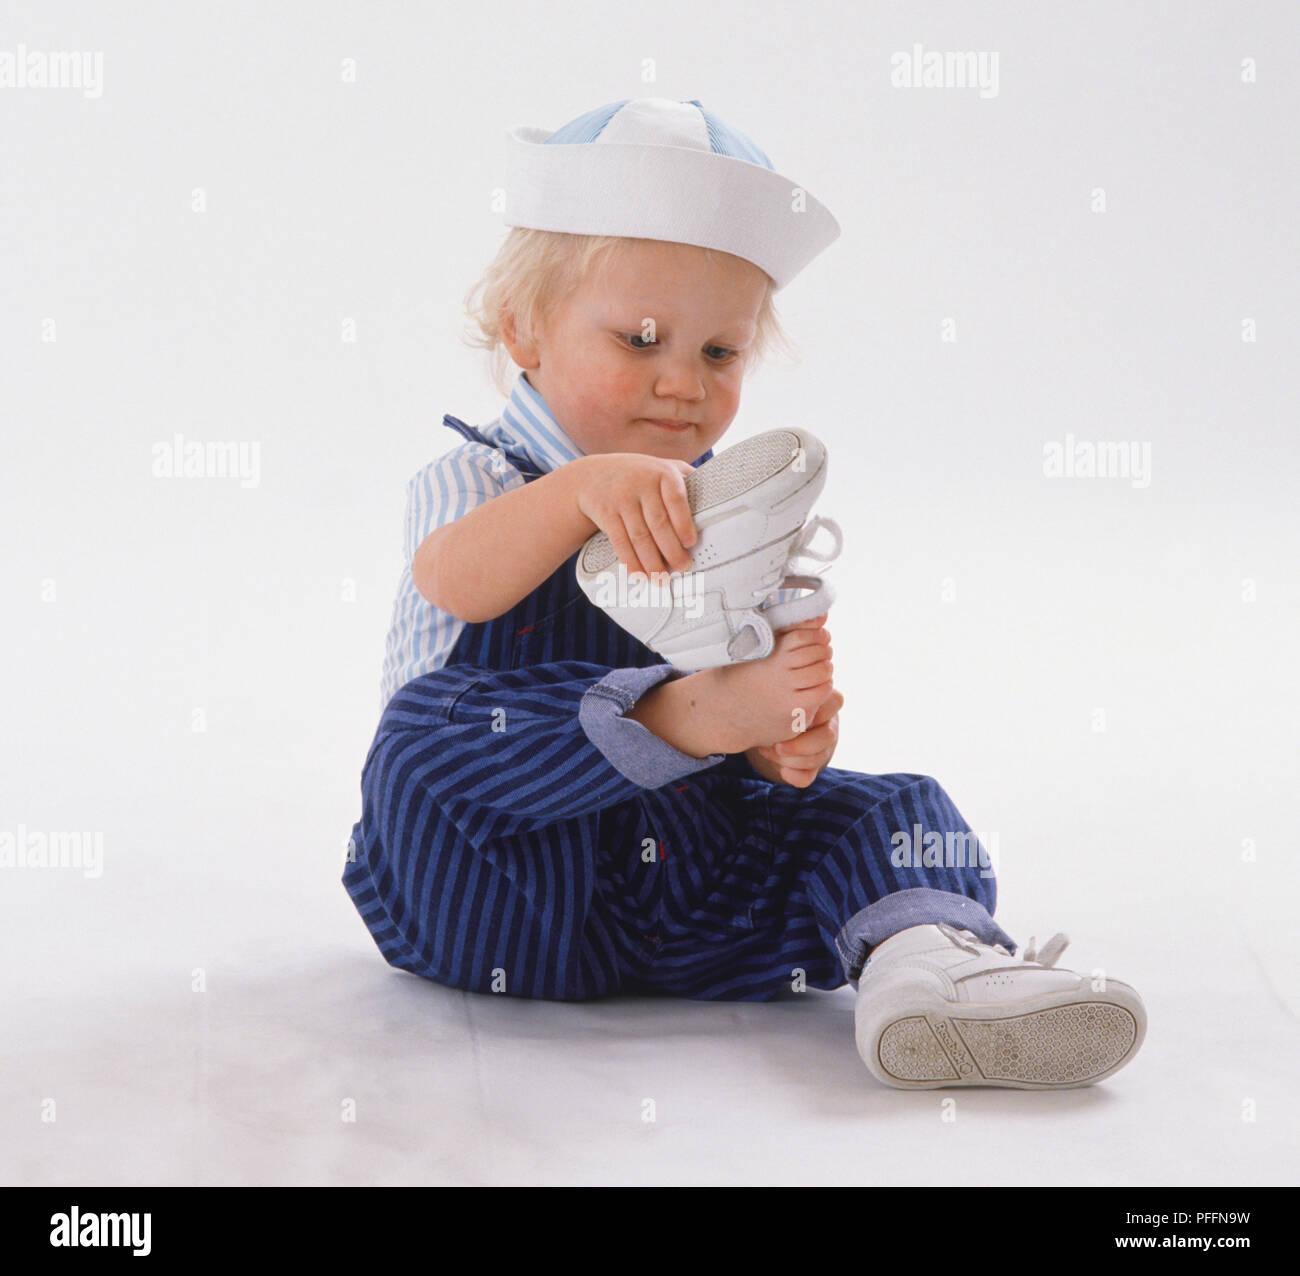 eb60ead7 Toddler wearing striped dungarees, hat and one shoe, trying to put other  shoe on, expression of deep concentration.